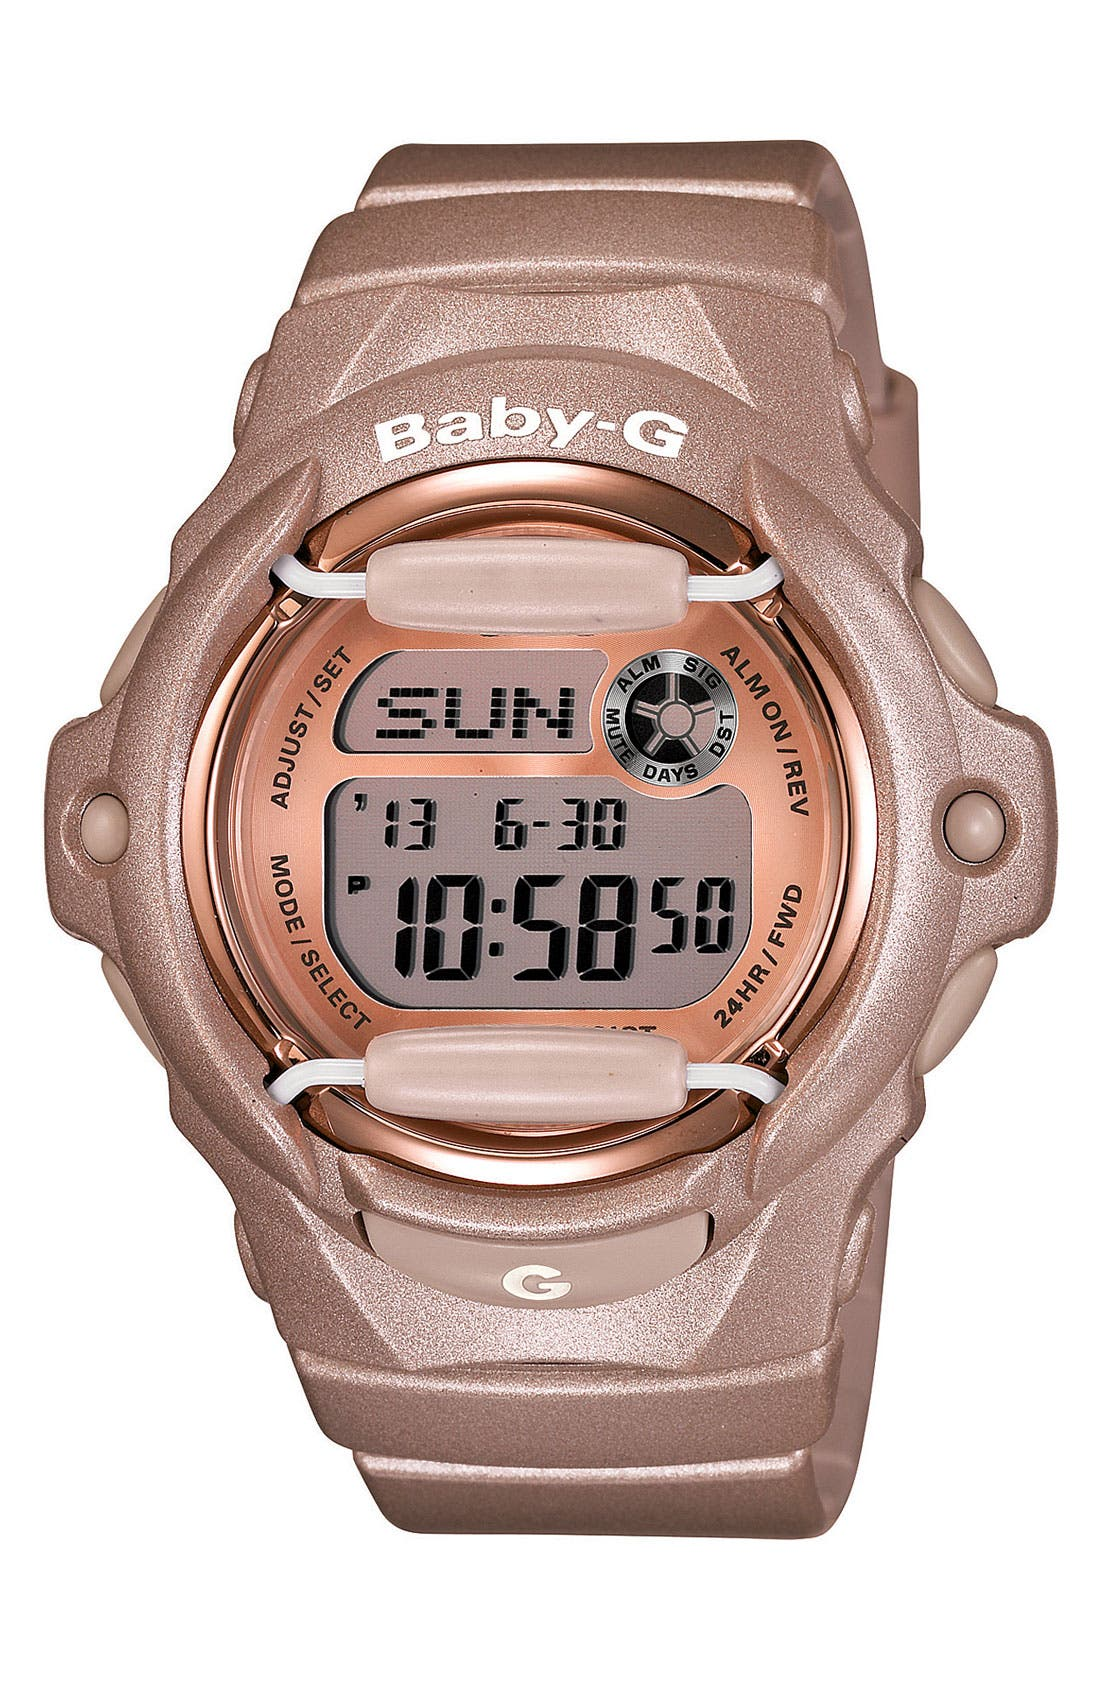 Main Image - Baby-G Pink Dial Digital Watch, 46mm x 42mm